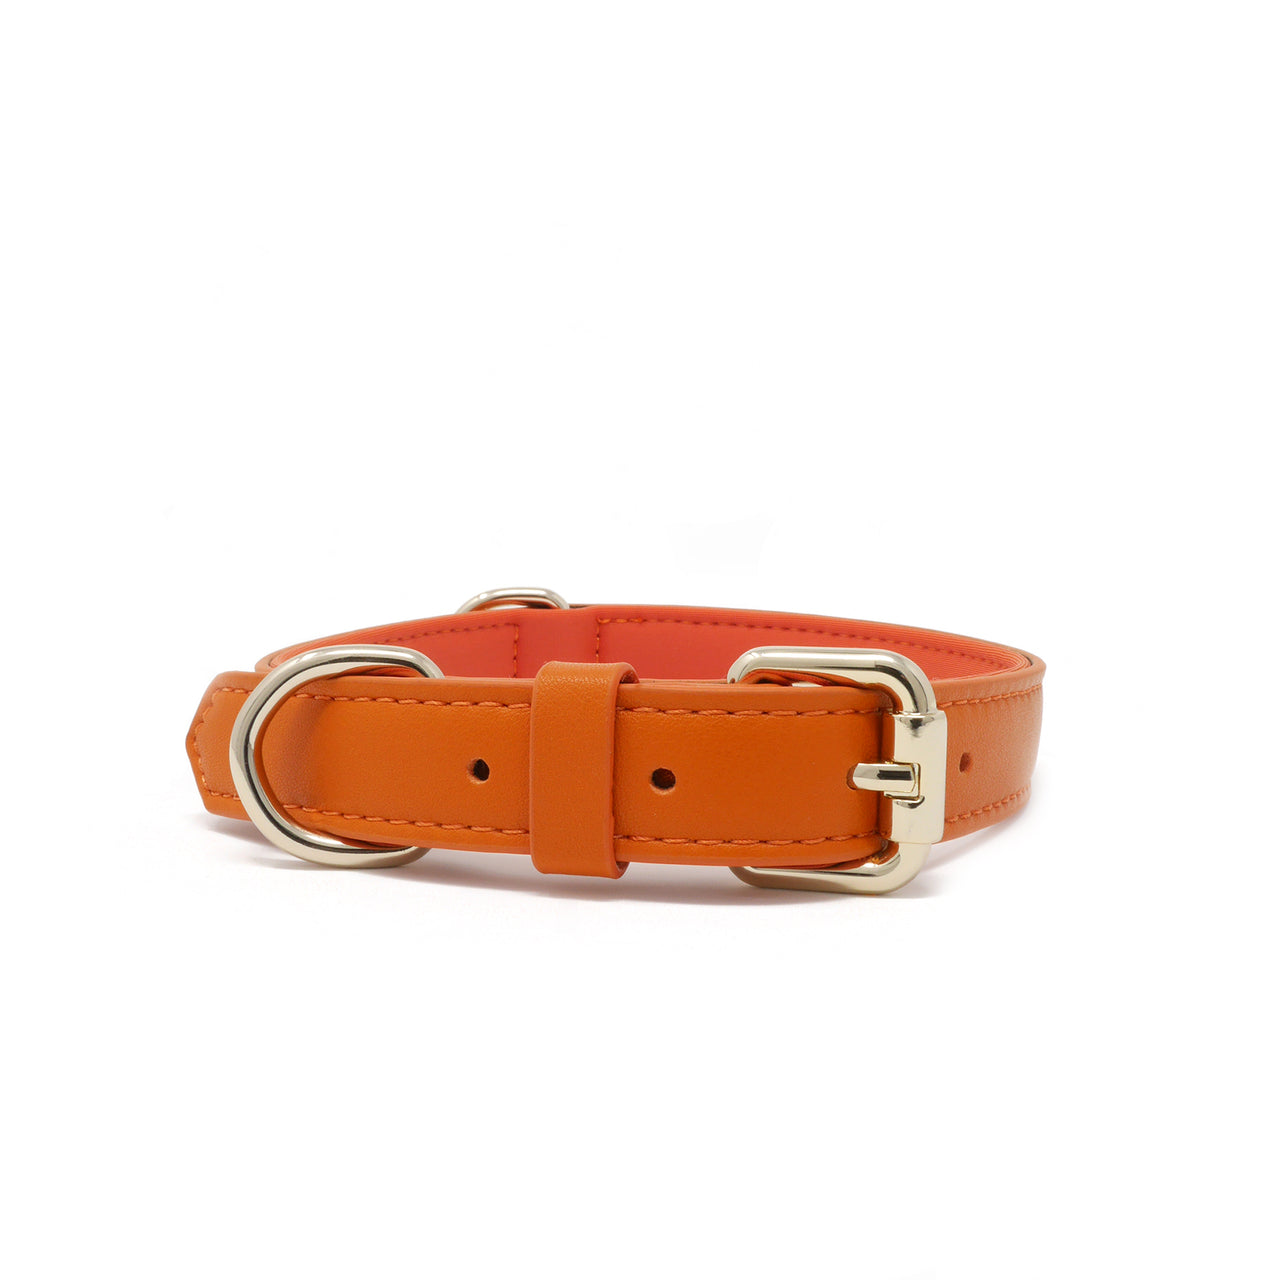 Collar - Tangerine Orange